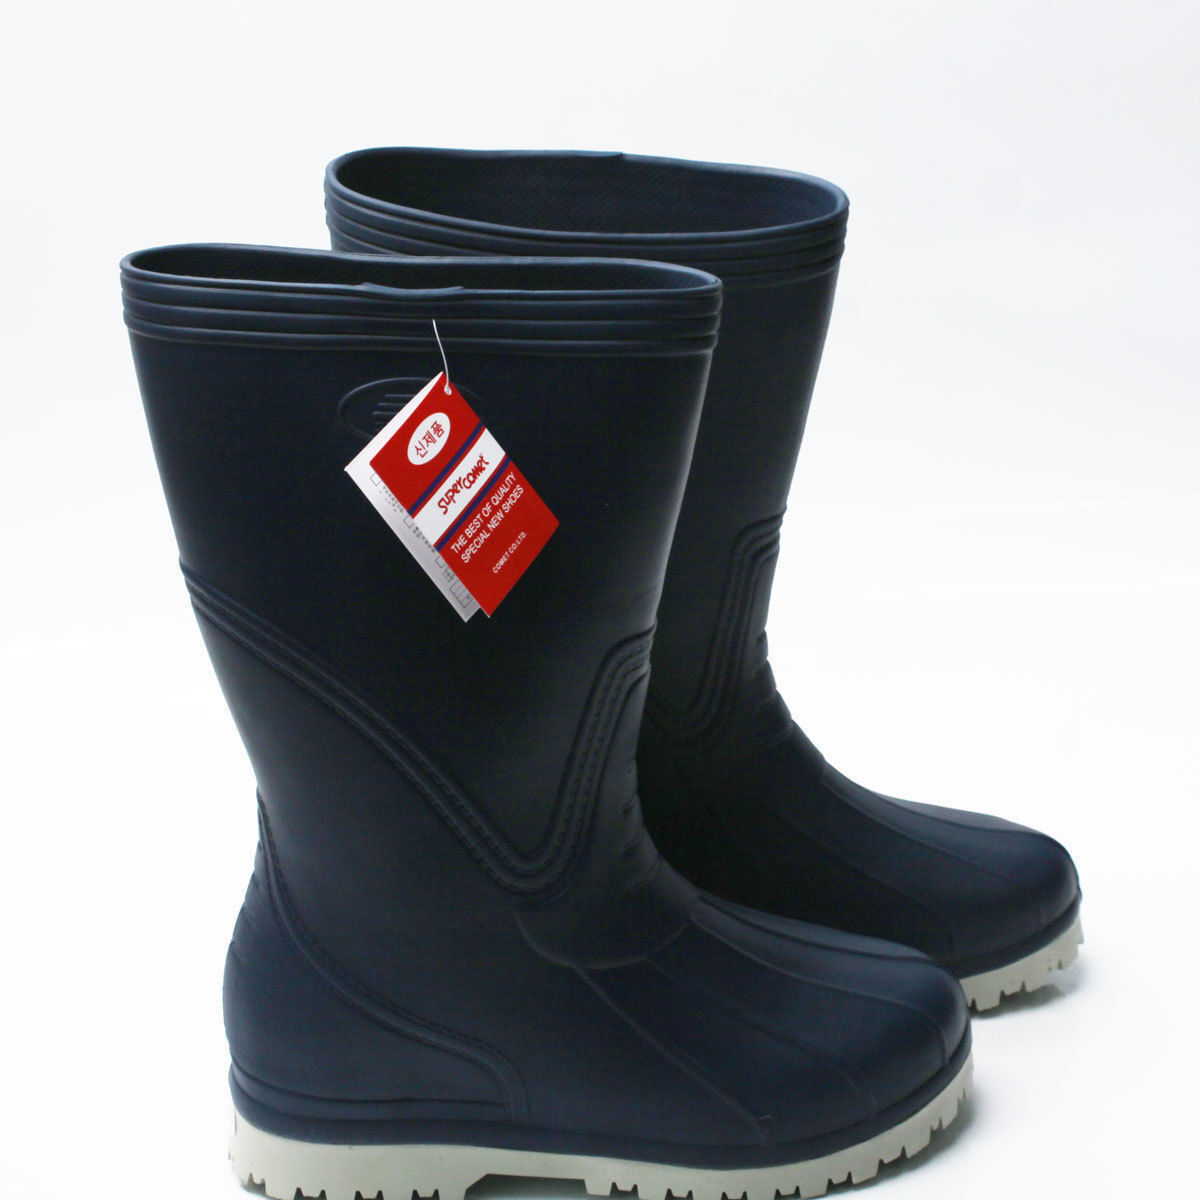 Mens Waterproof Rubber Rain Boots Work Safety Non-Slip Super Light